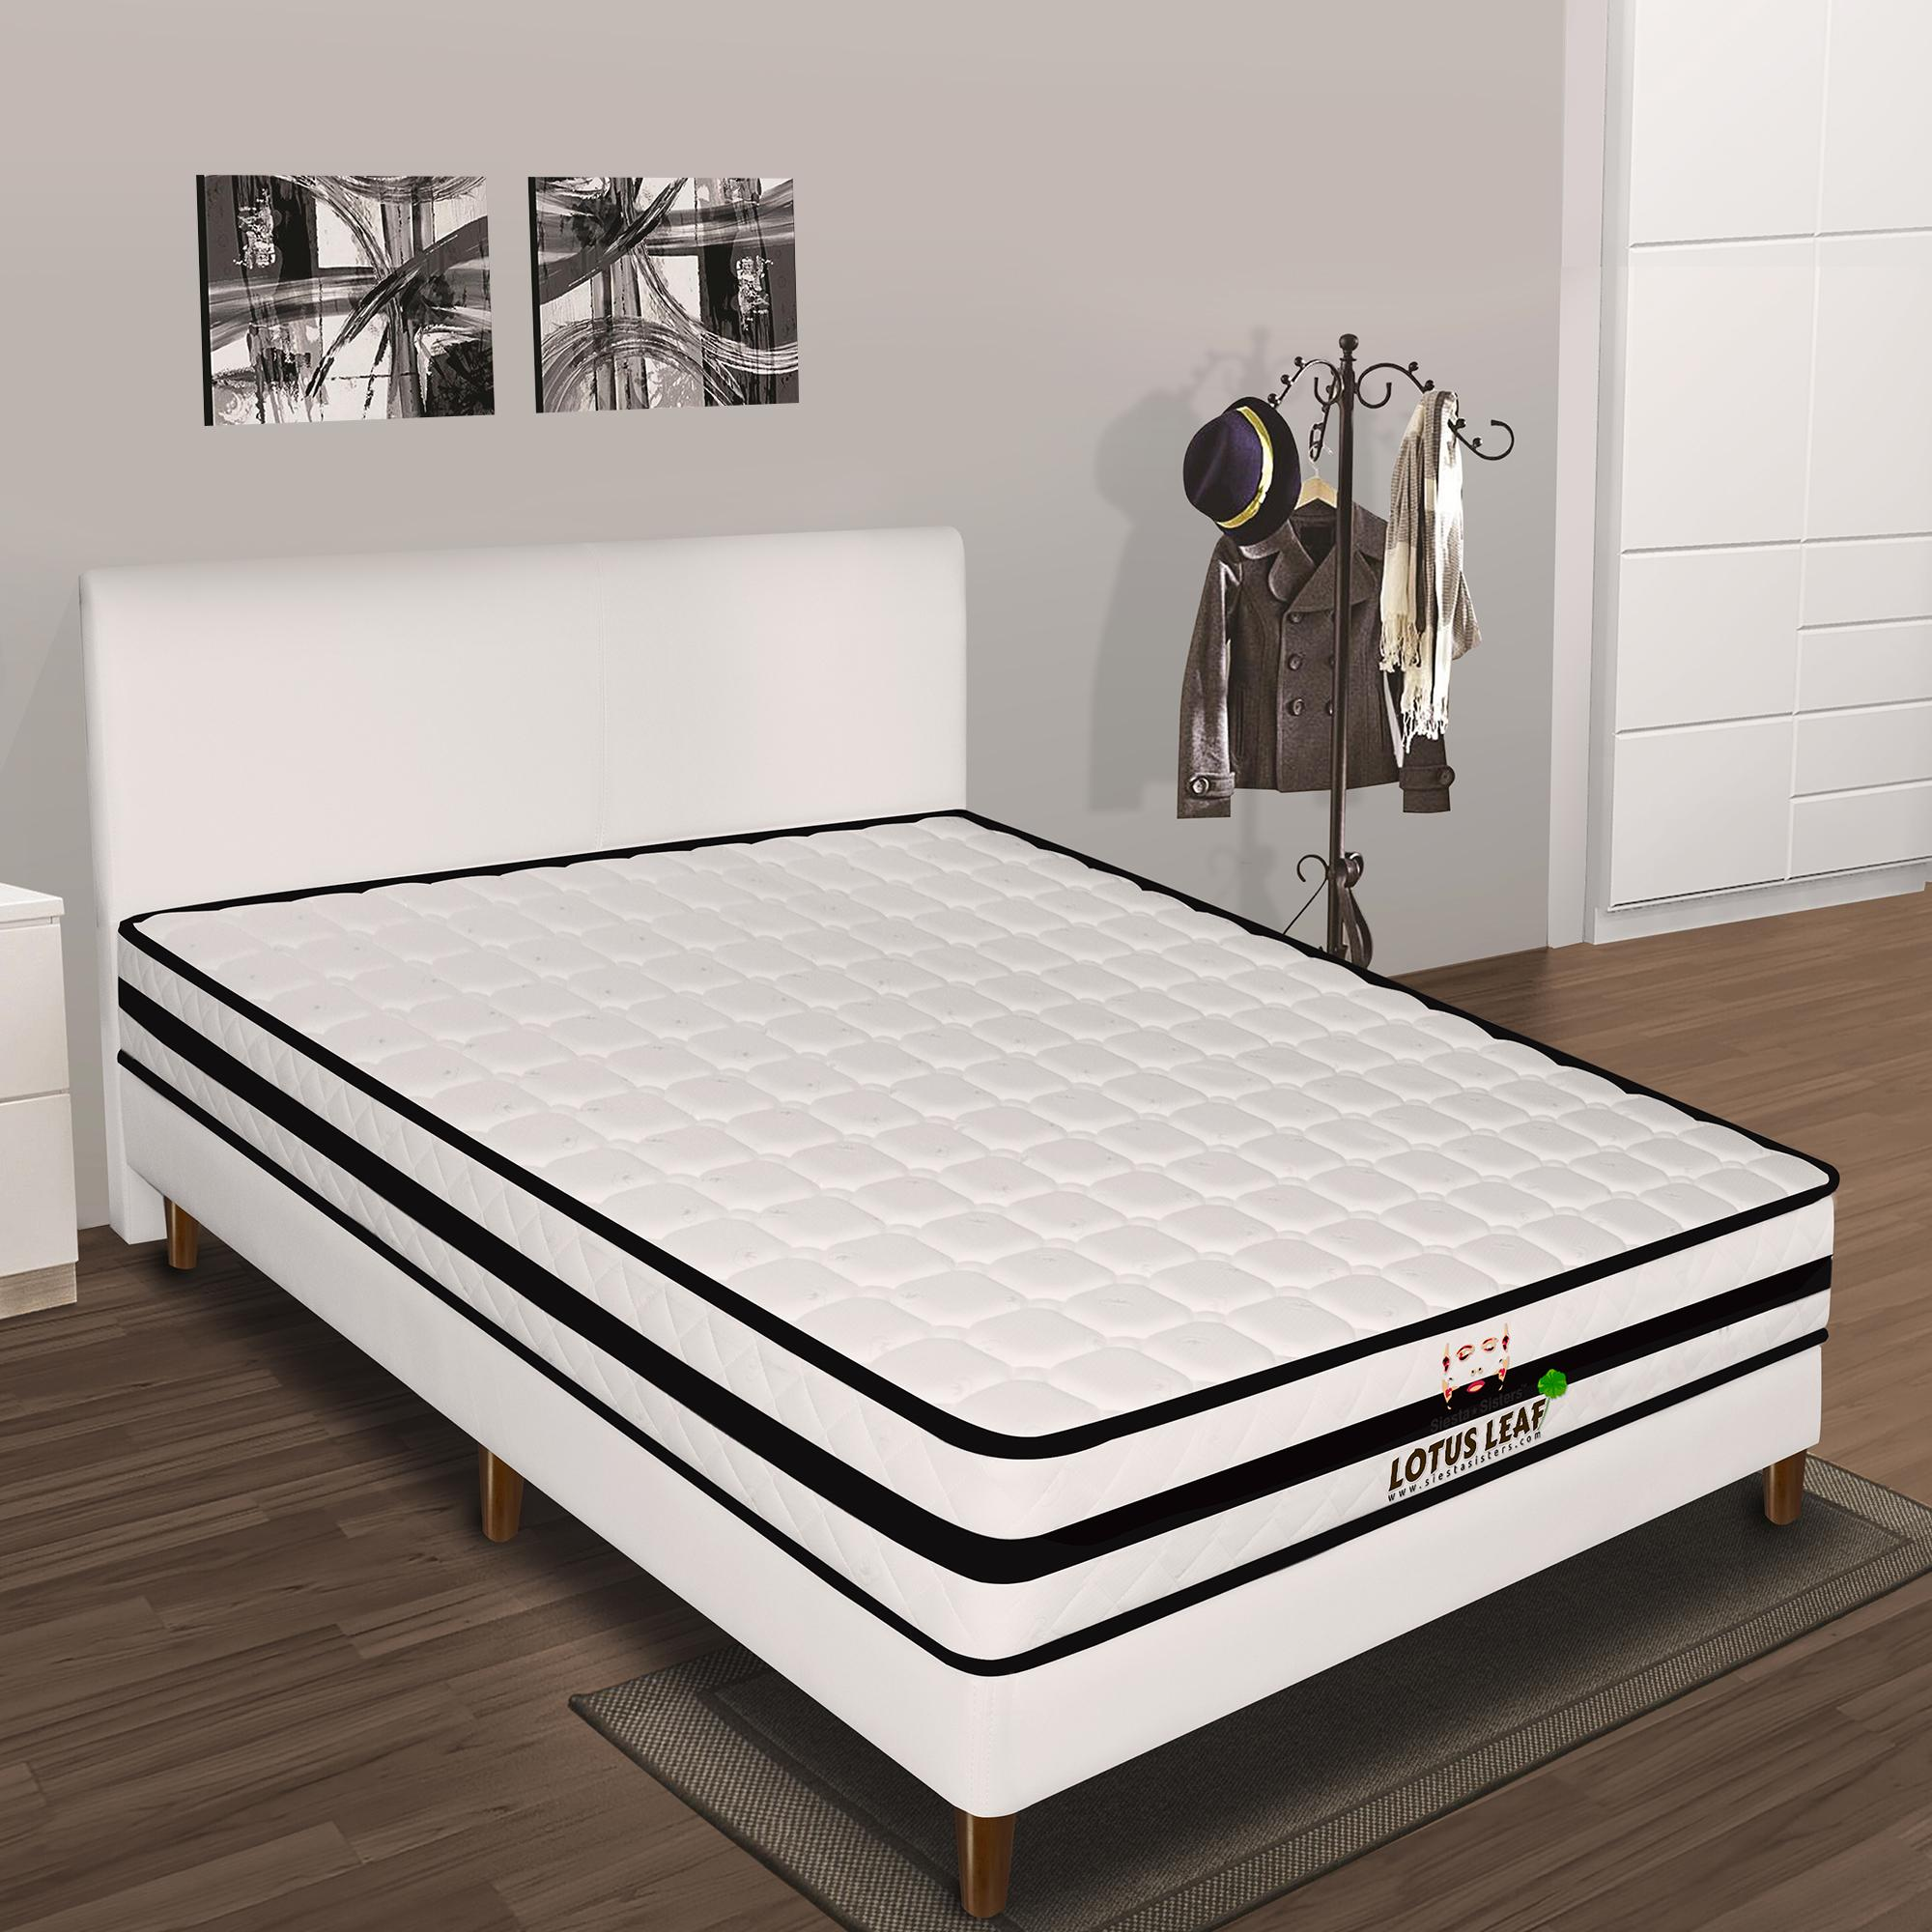 Lotus Leaf Mattress 20cm with Bed Frame with hard wooden legs